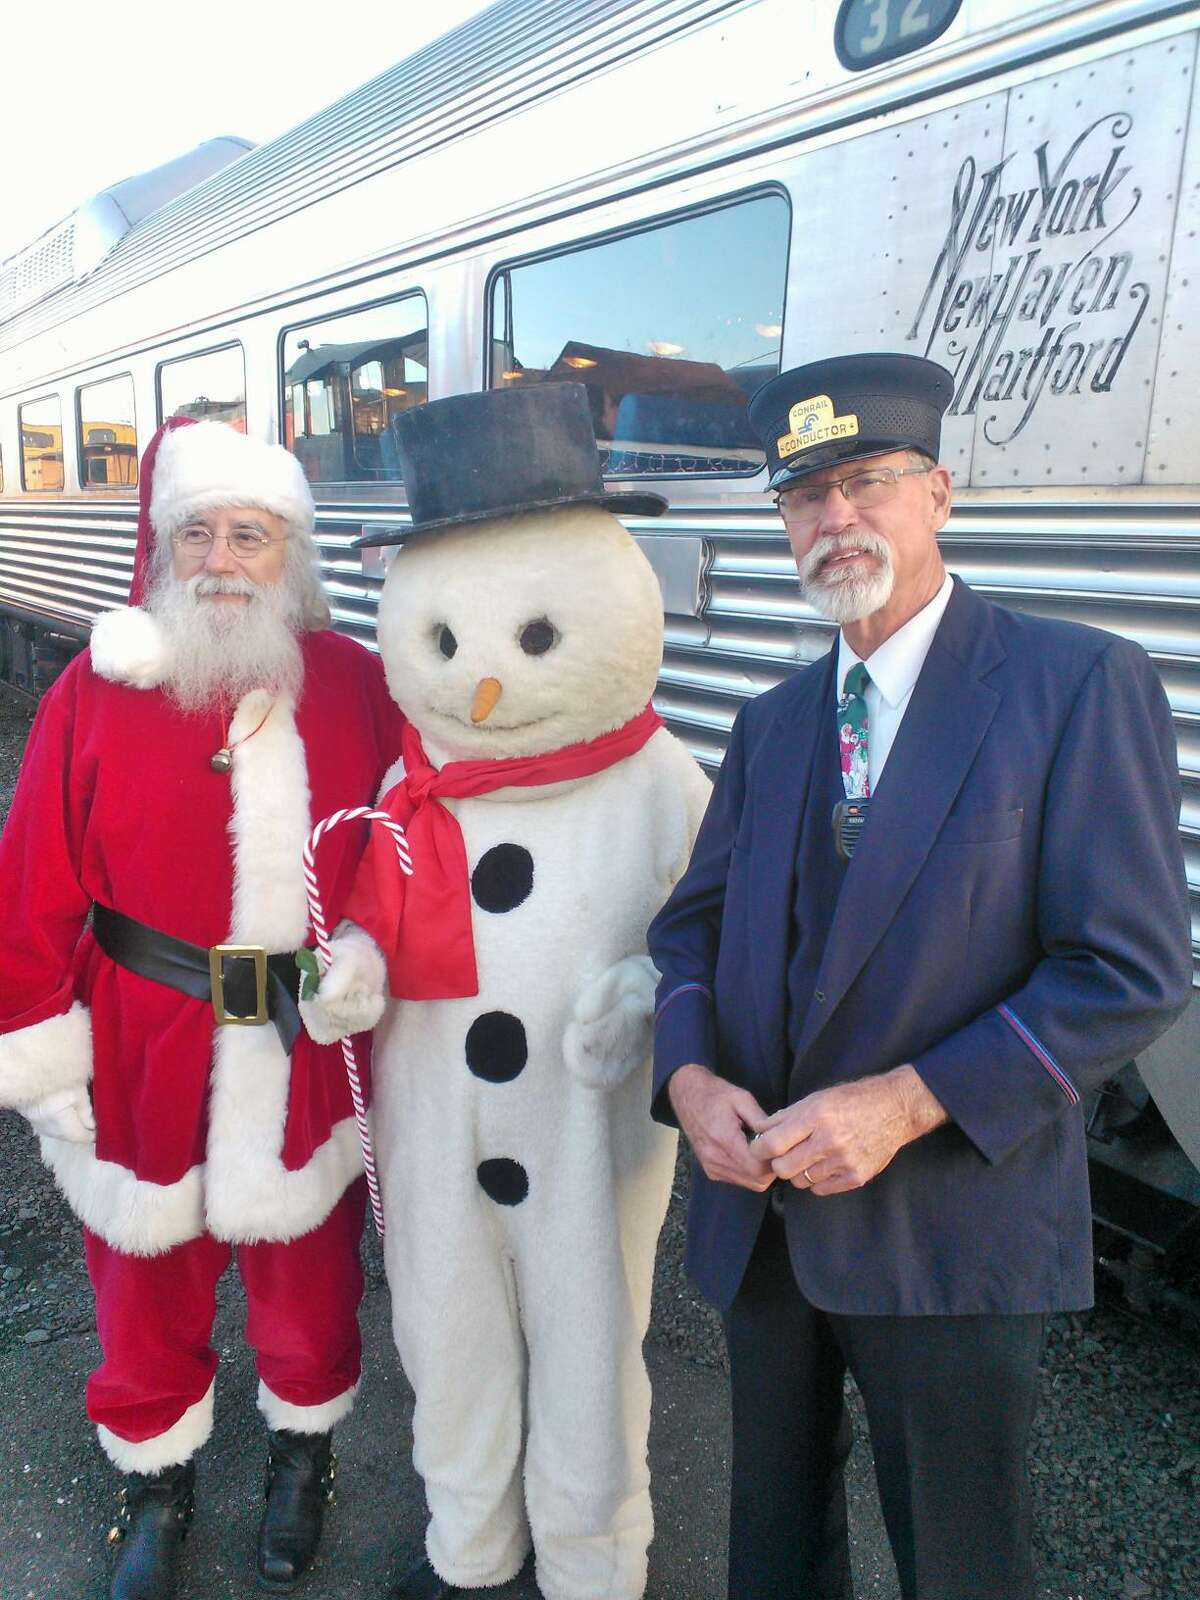 Santa, seen here with Frosty and conductor Jim Teer, will once again pay a visit to the Danbury Railway Museum December 7-8, 14-15 and 21-22.